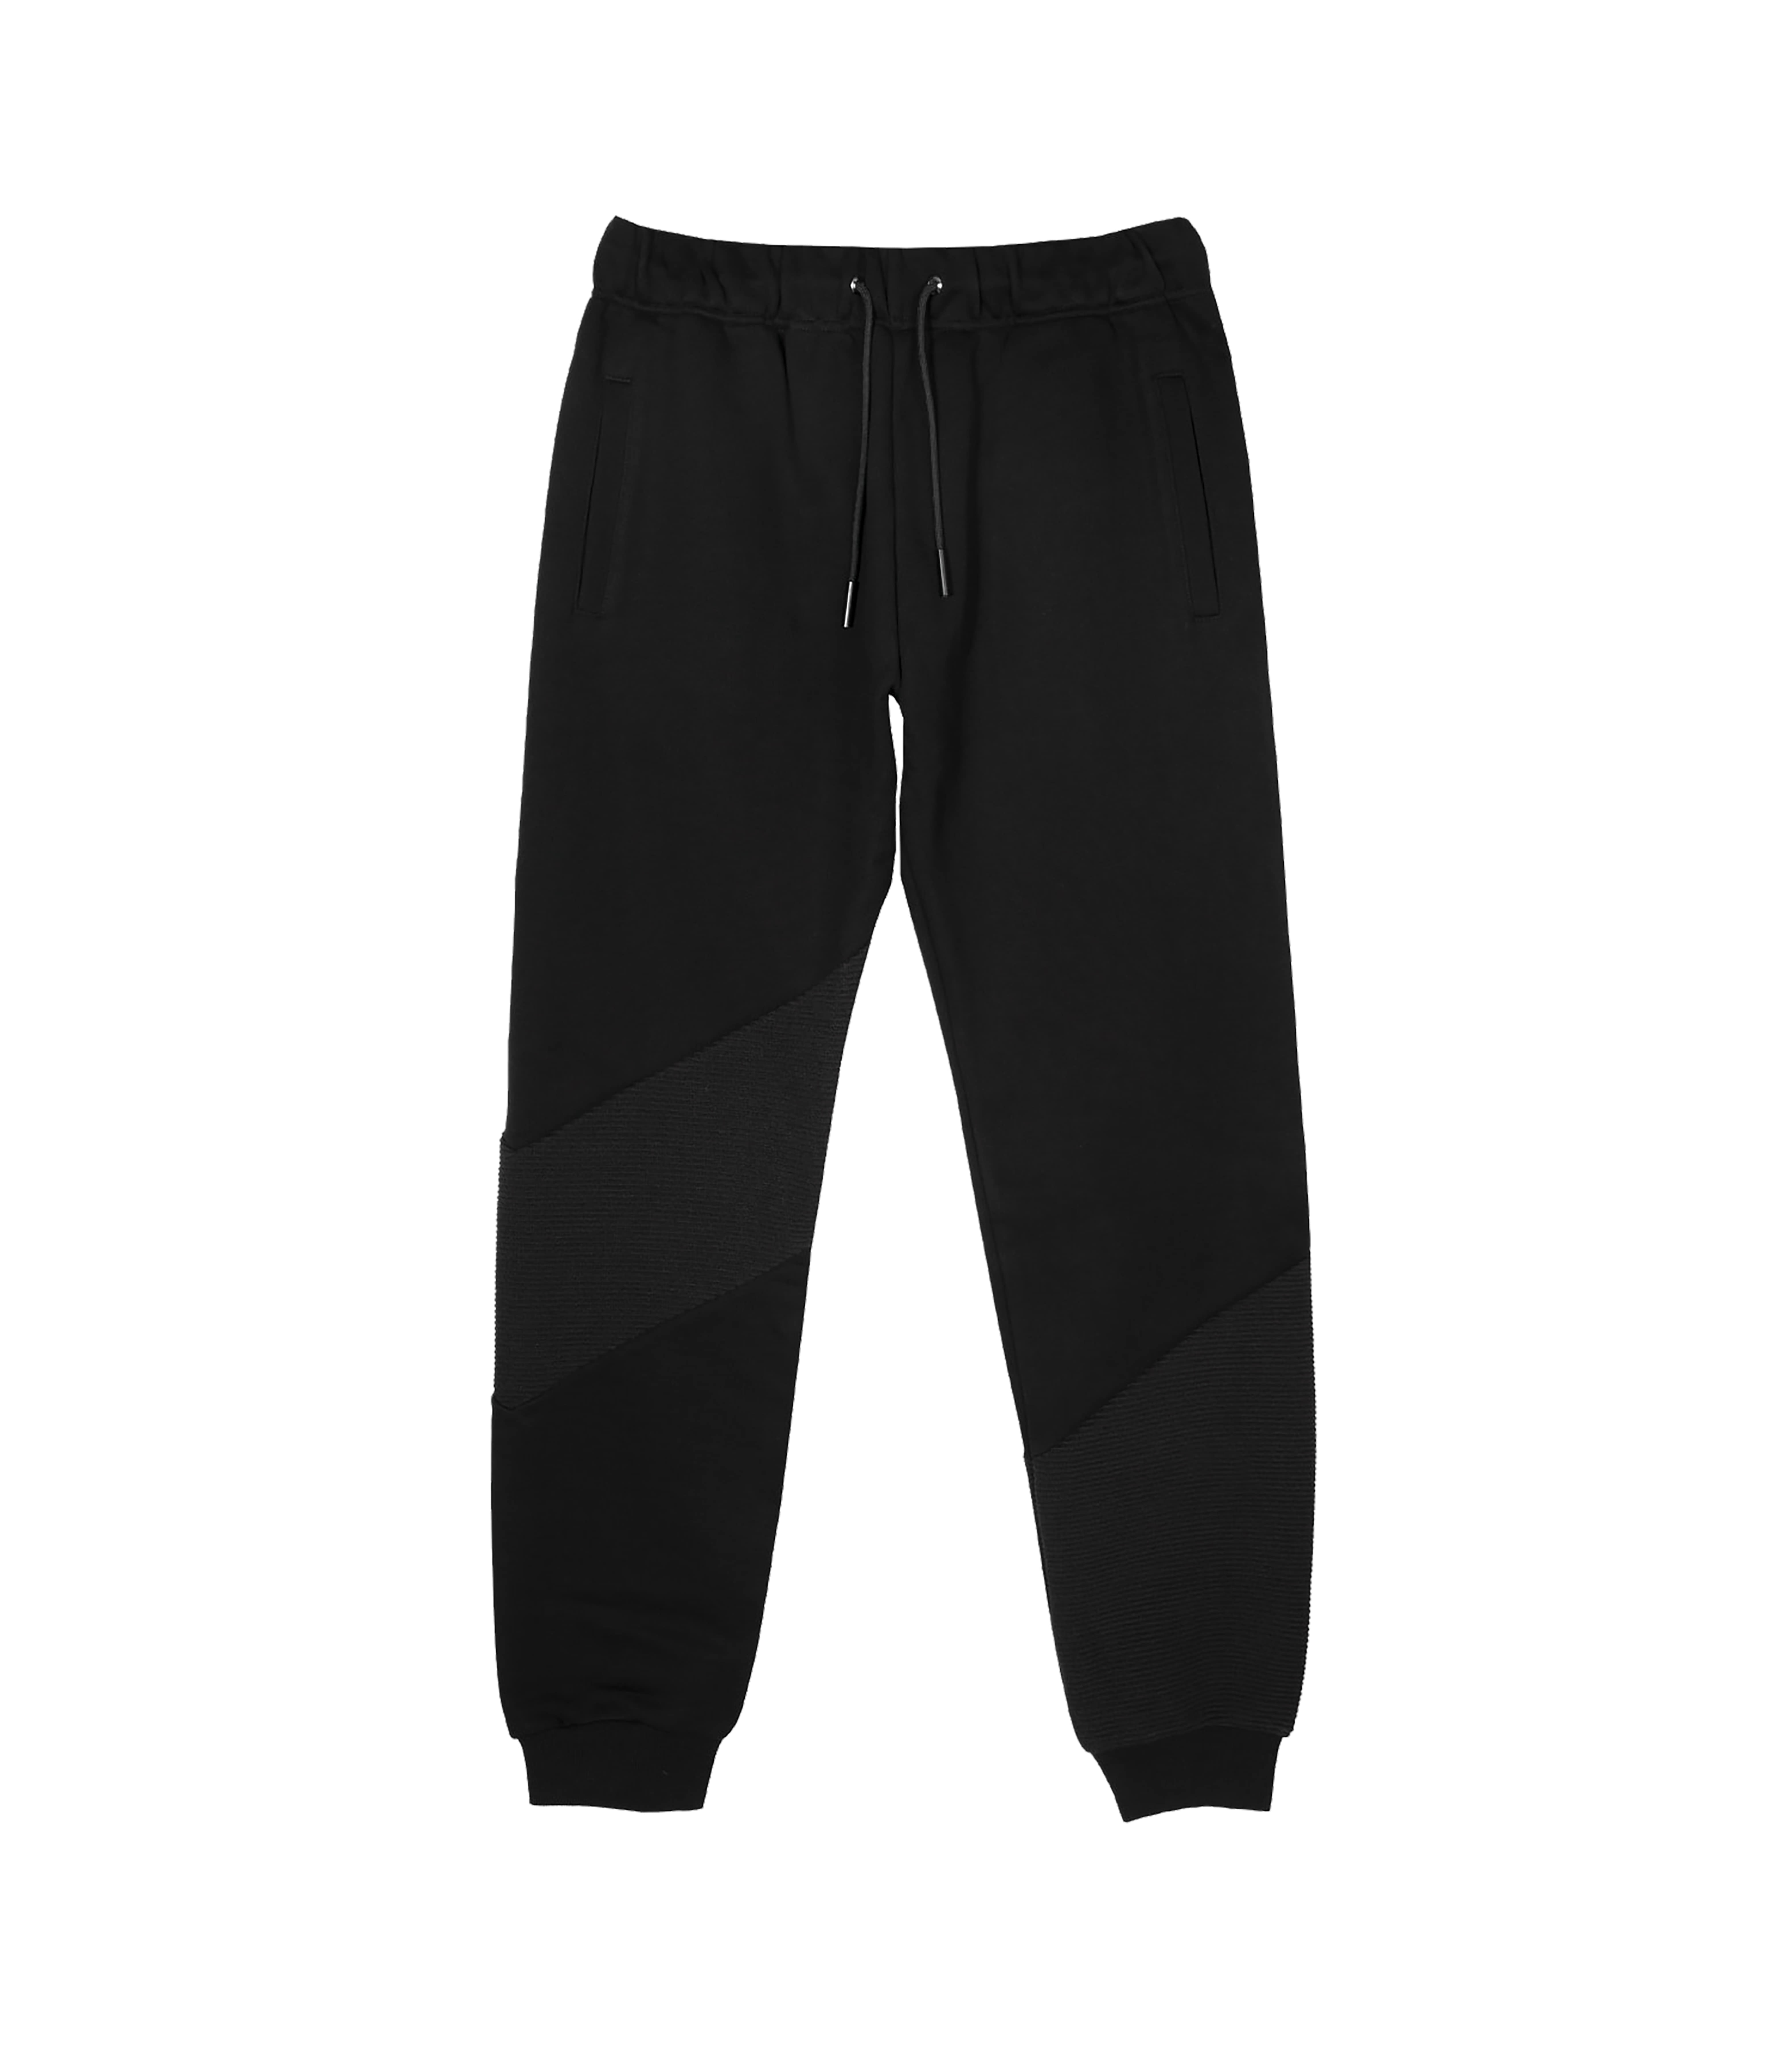 VIBRATE - RIDERS JOGGER PANTS VER.3 (BLACK)